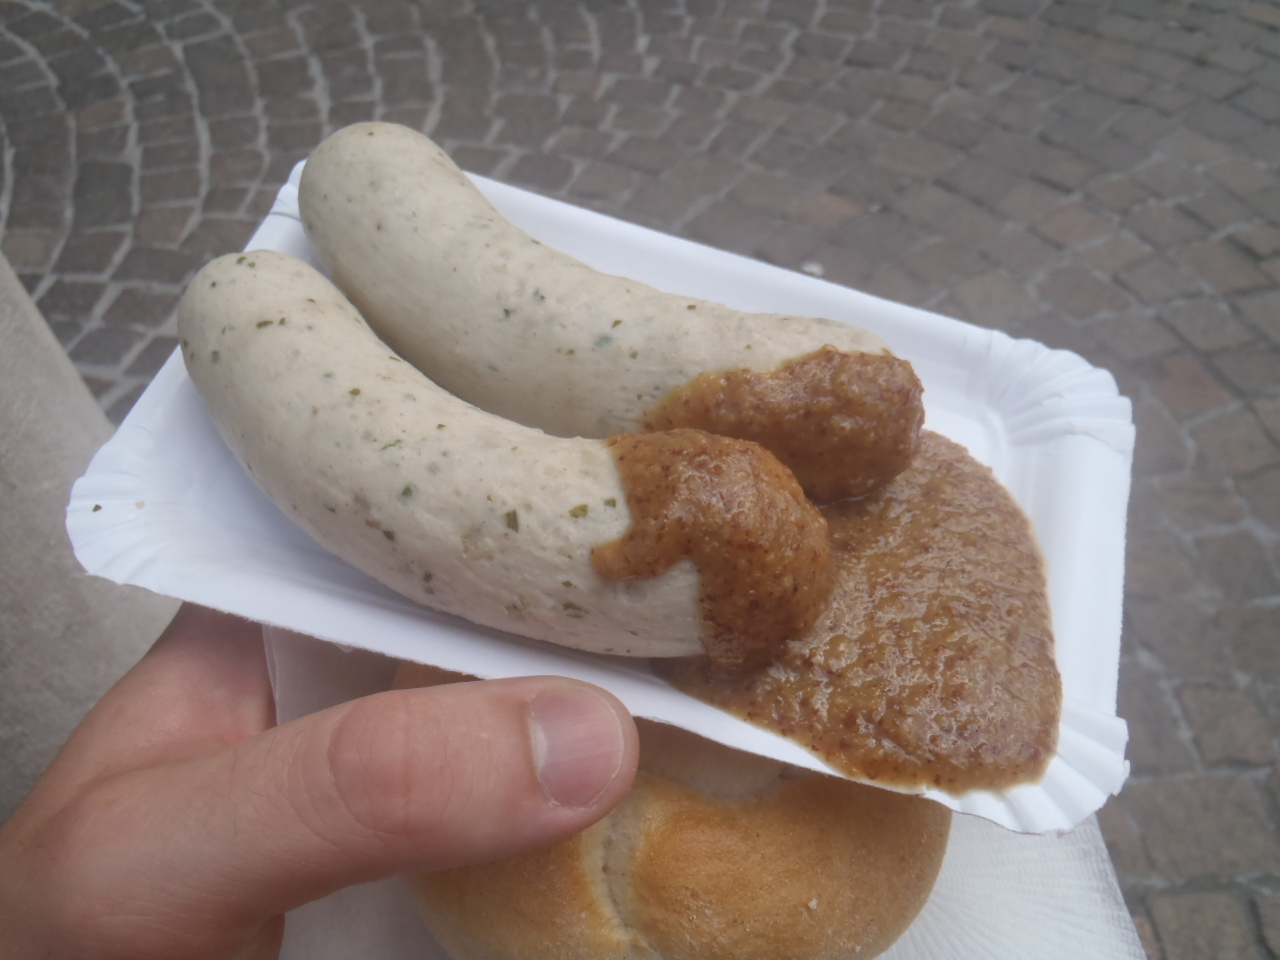 A pair of weisswurst from a sausage stand in Salzburg.